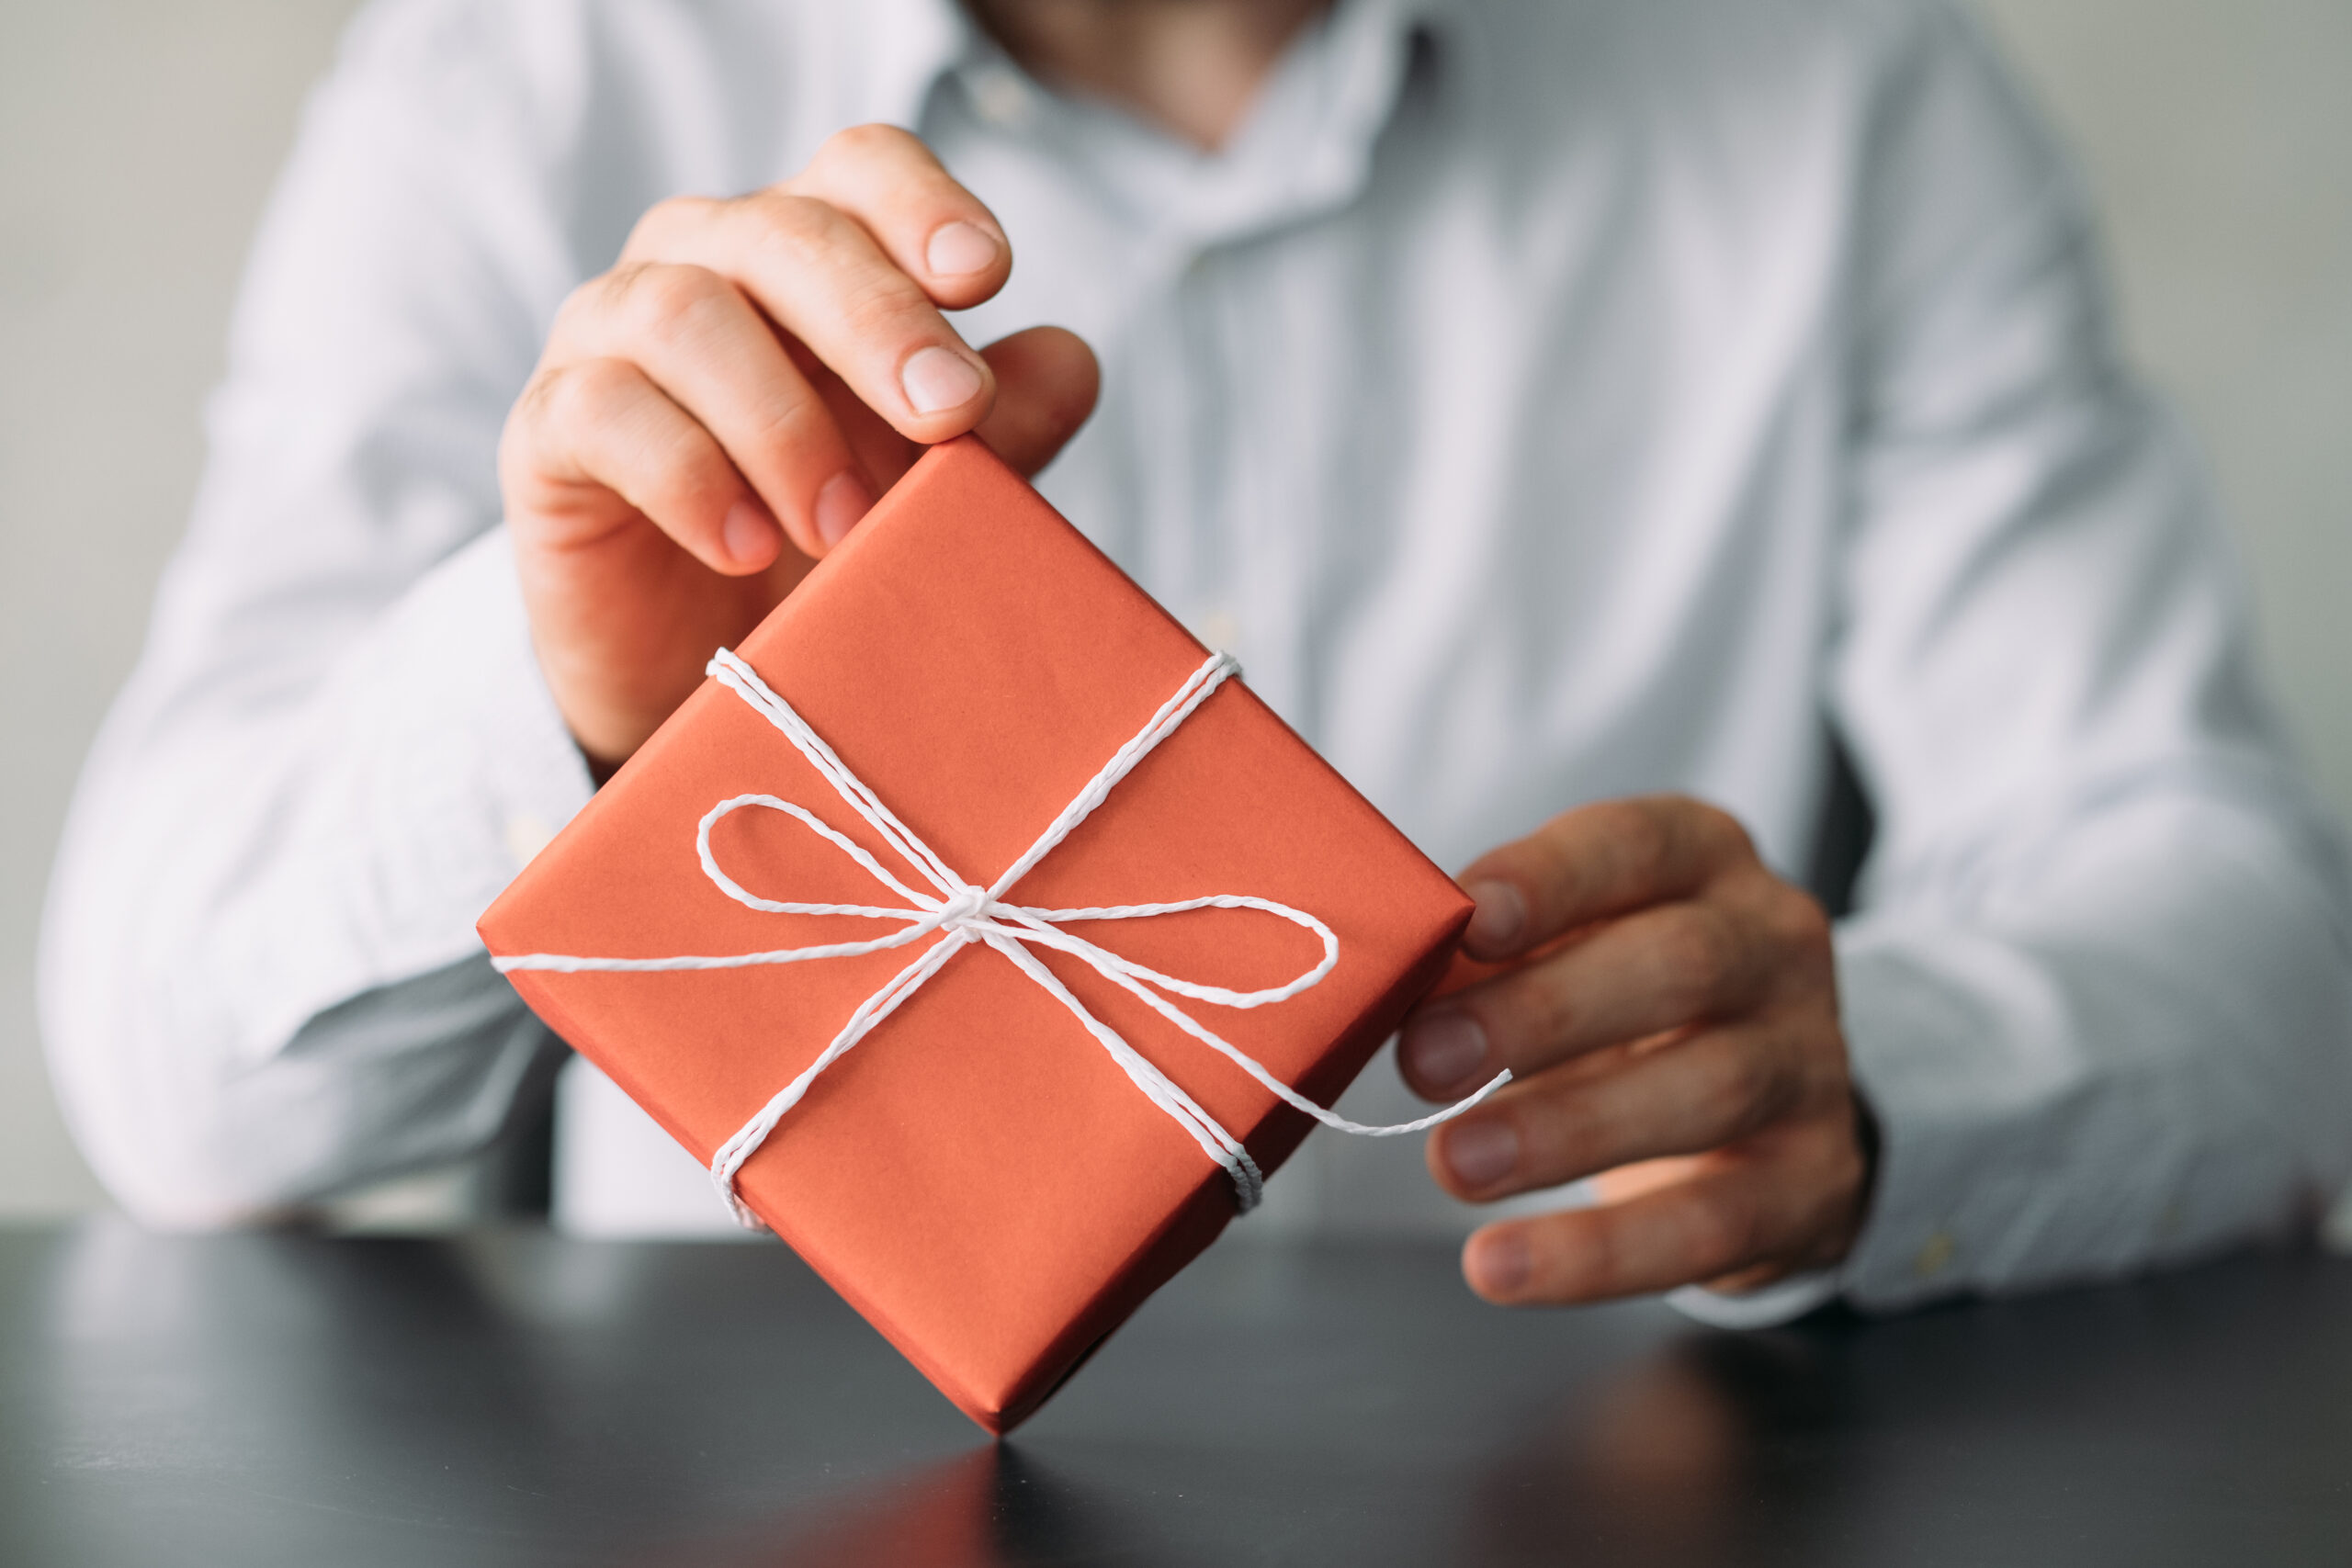 Thoughtful Corporate Gift Ideas To Keep Your Employees Motivated